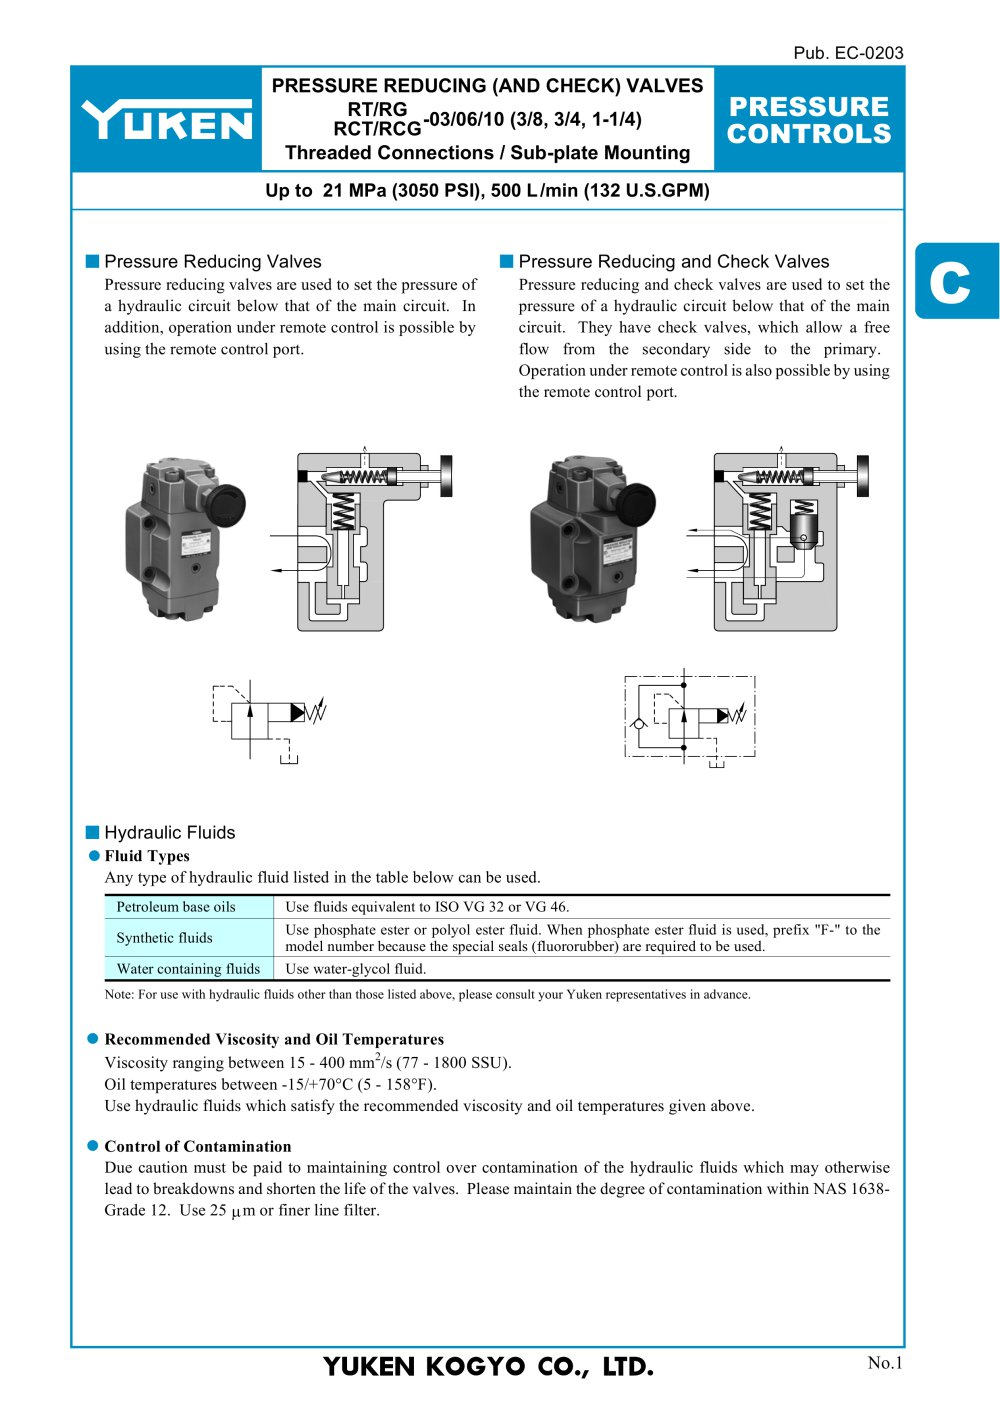 Pressure Reducing Check Valves Yuken Europe Ltd Pdf The Basics Of Hydraulic Circuitry 1 13 Pages